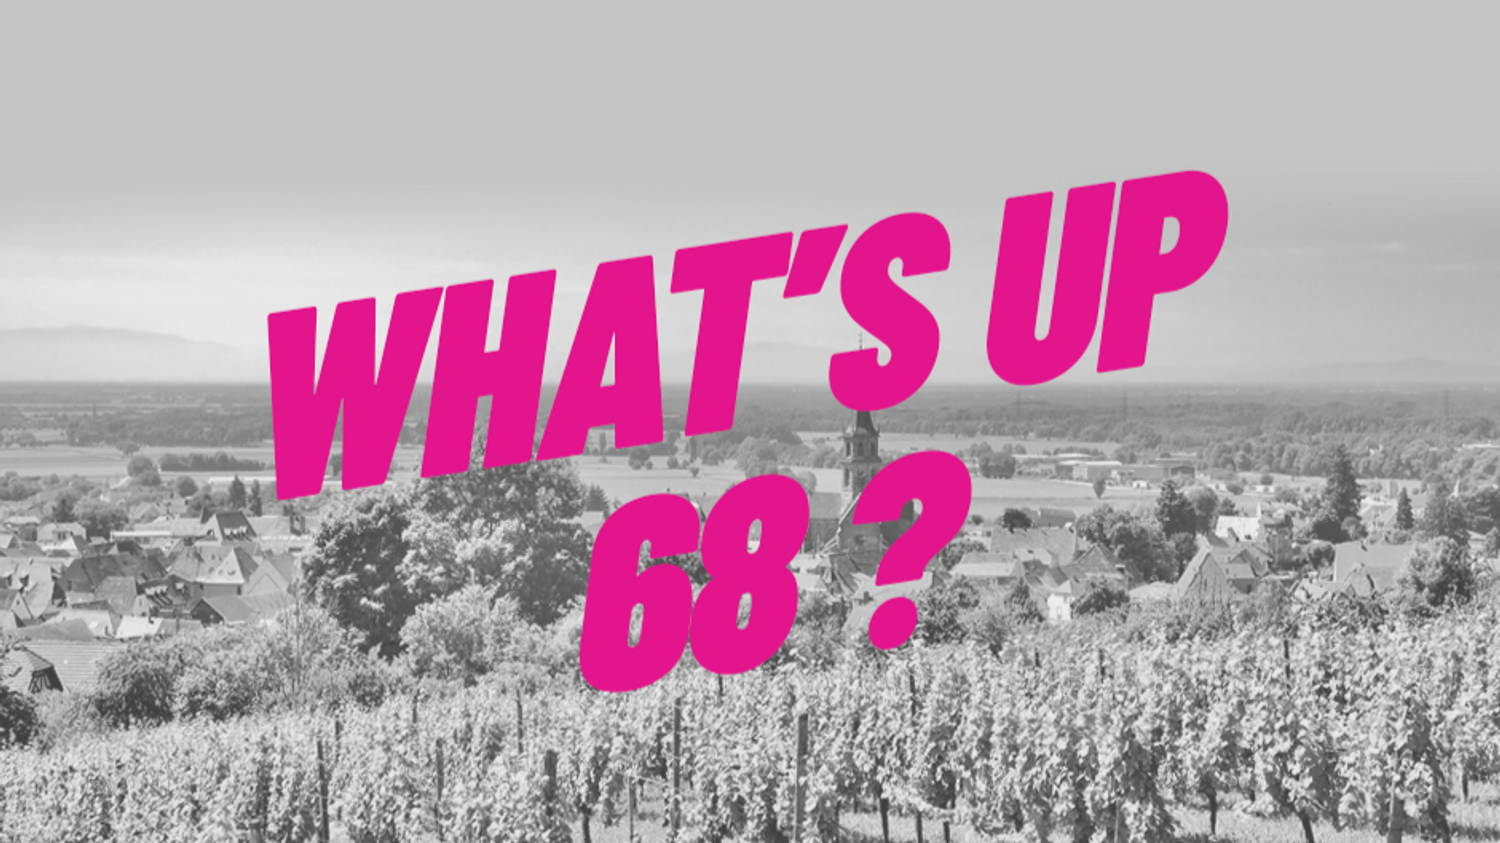 WHATS UP 68